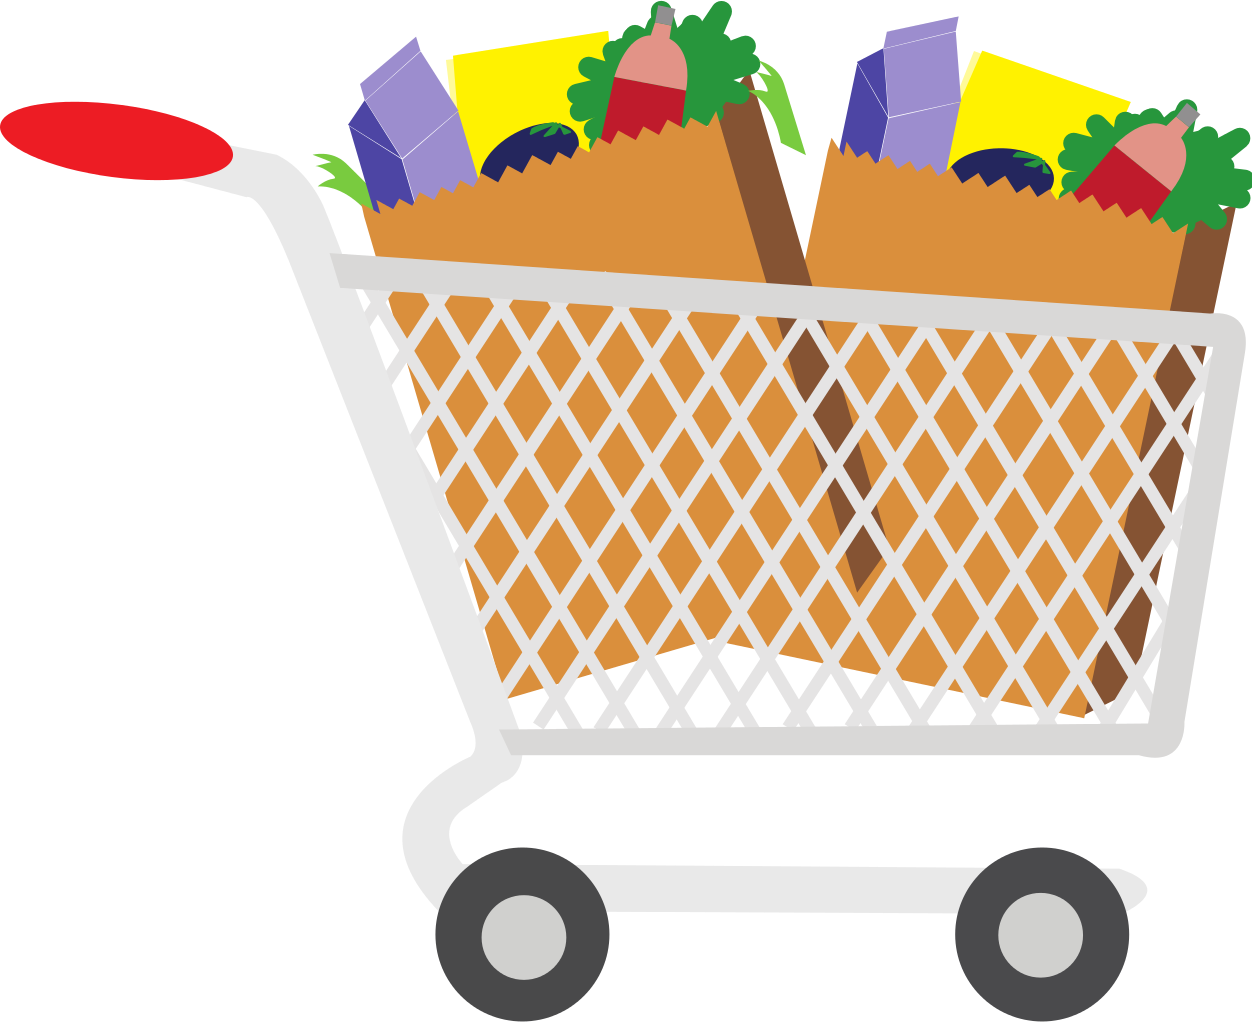 Panda free images groceryclipart. Kawaii clipart grocery